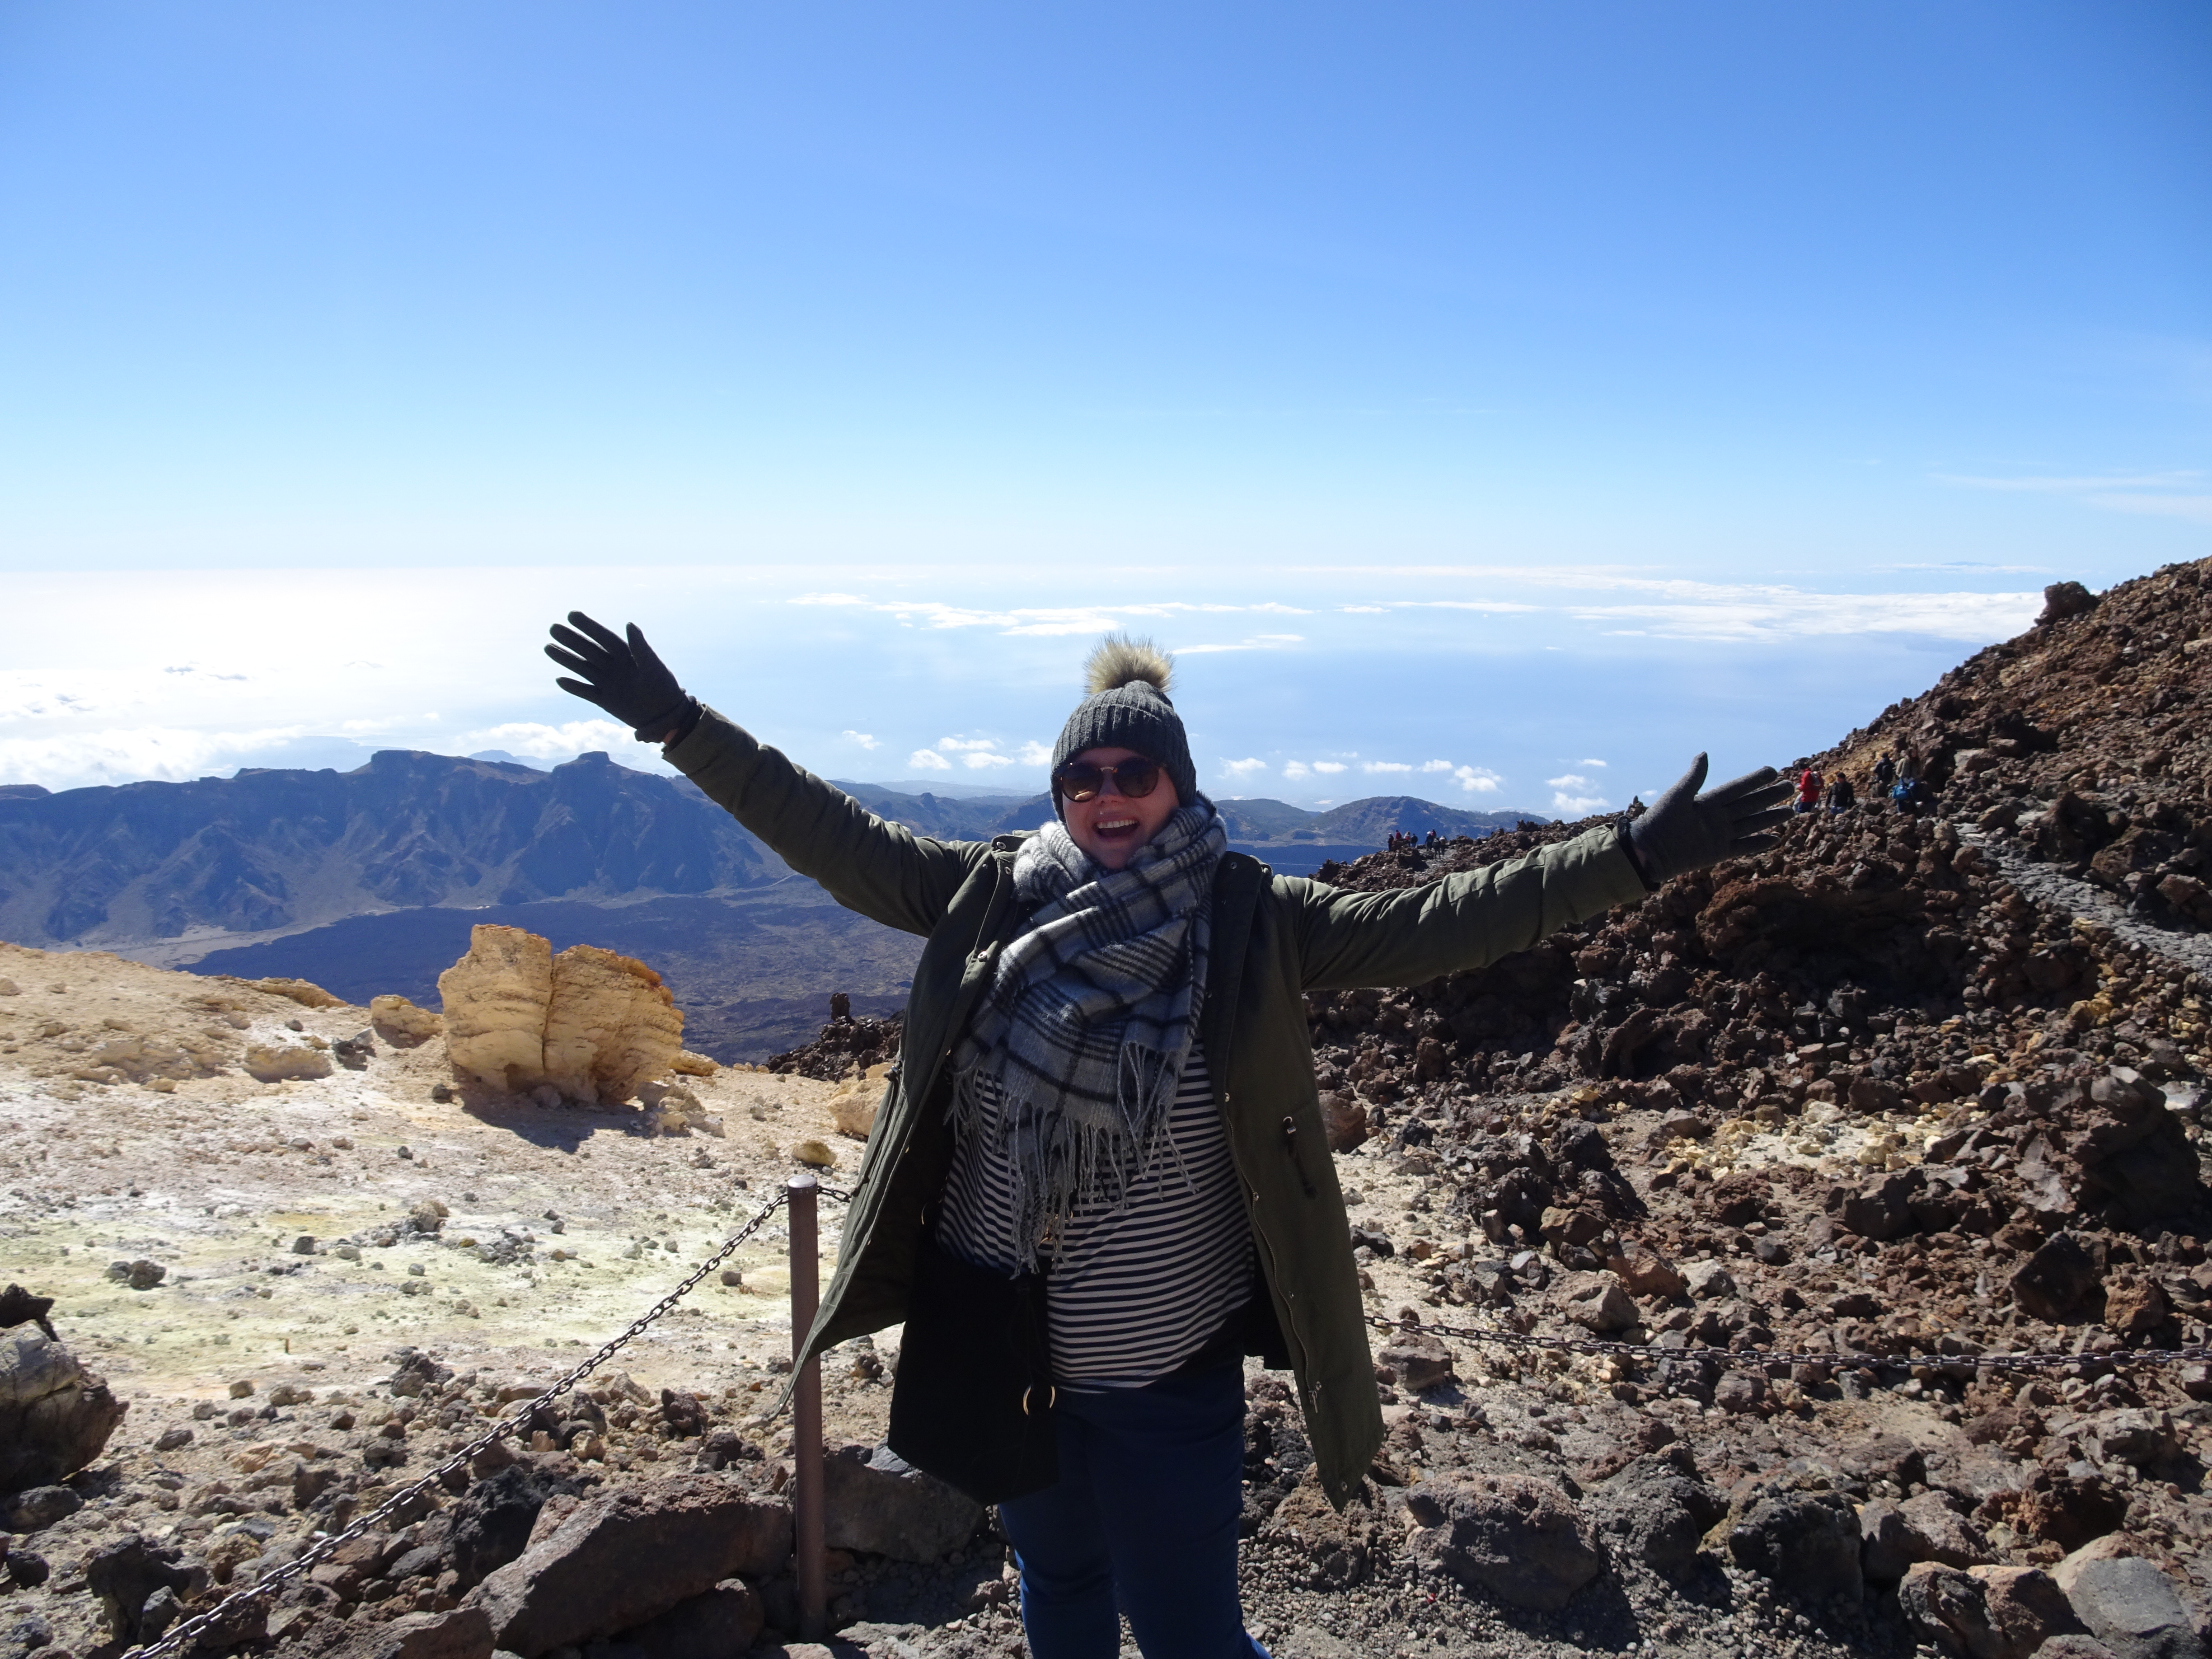 At the top of Mount Teide